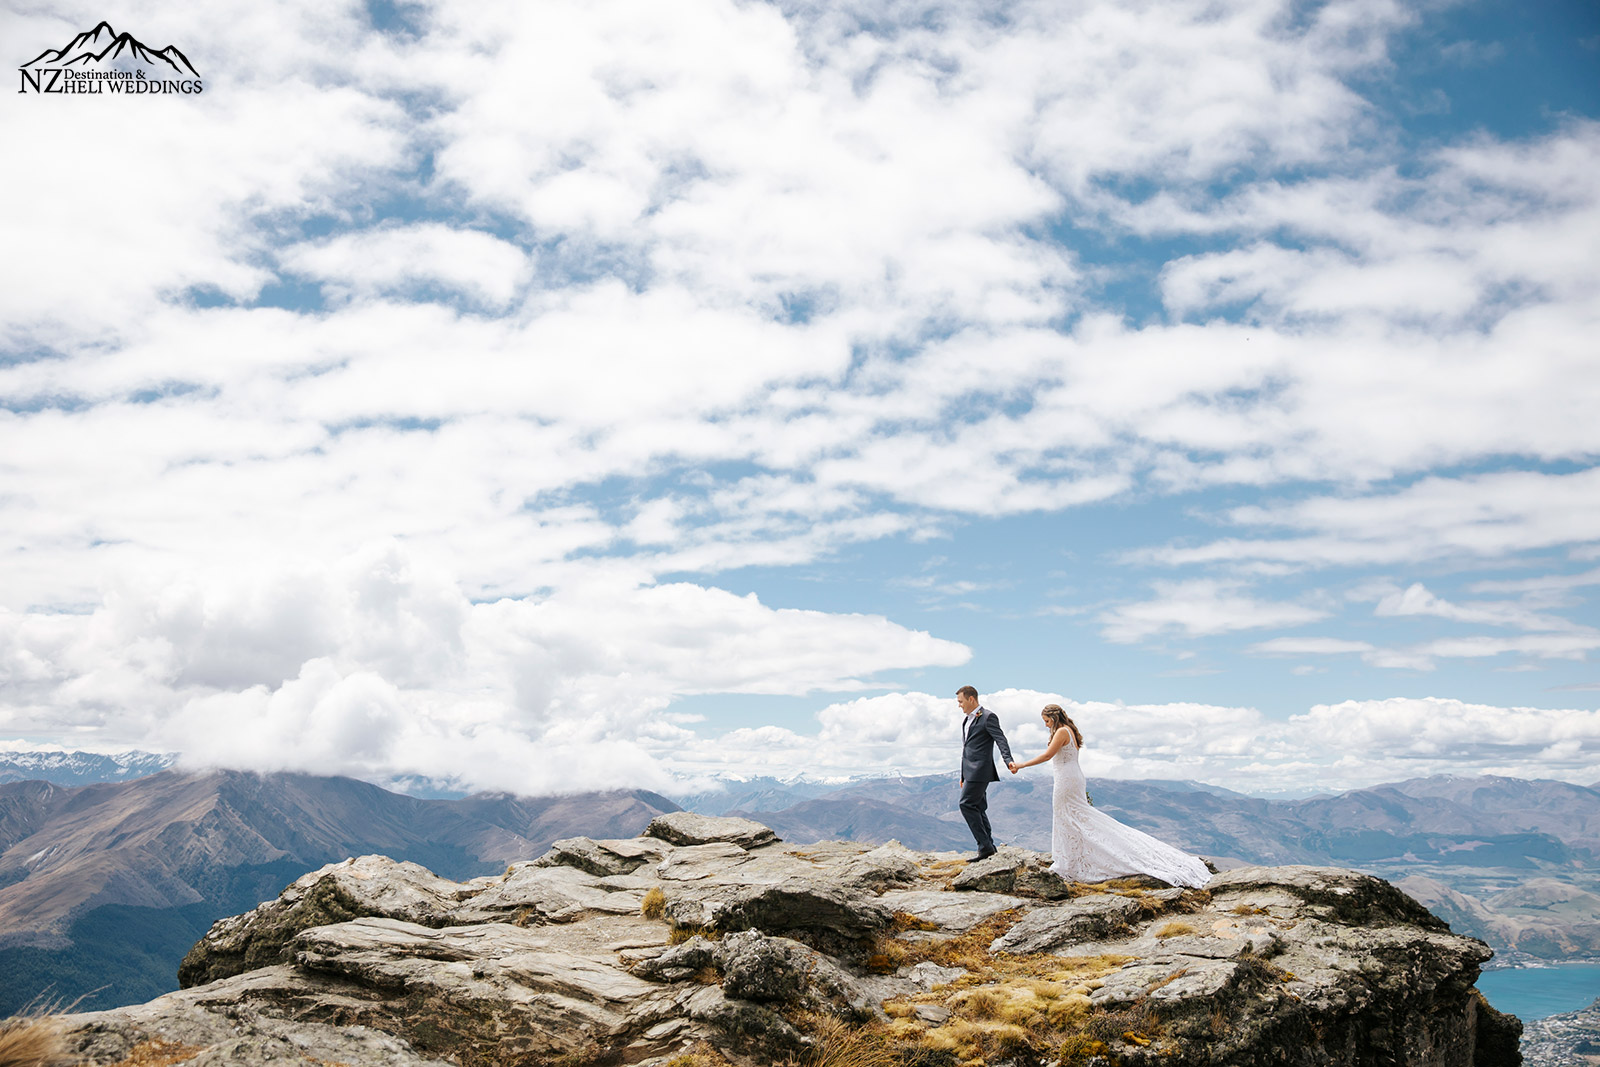 Queenstown Elopement wedding on the ledge